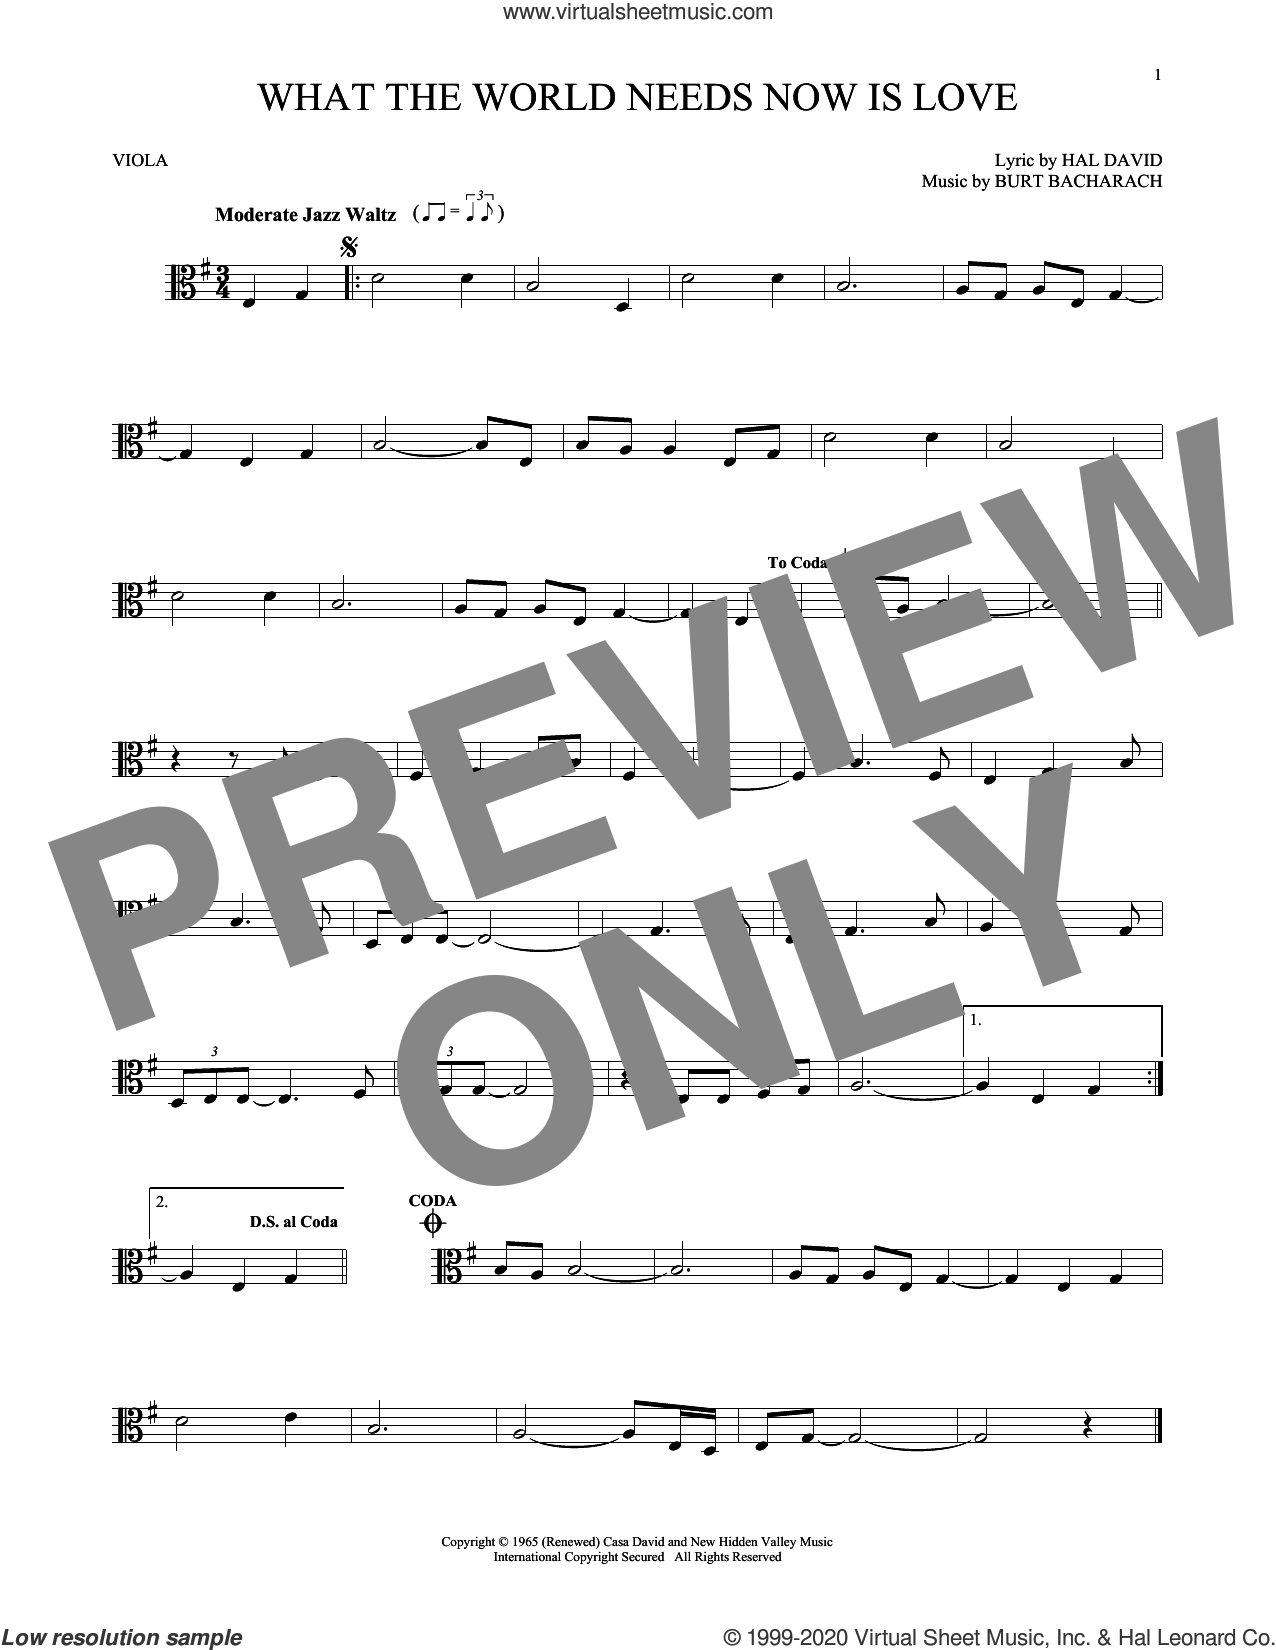 What The World Needs Now Is Love sheet music for viola solo by Bacharach & David, Jackie DeShannon, Burt Bacharach and Hal David, intermediate skill level